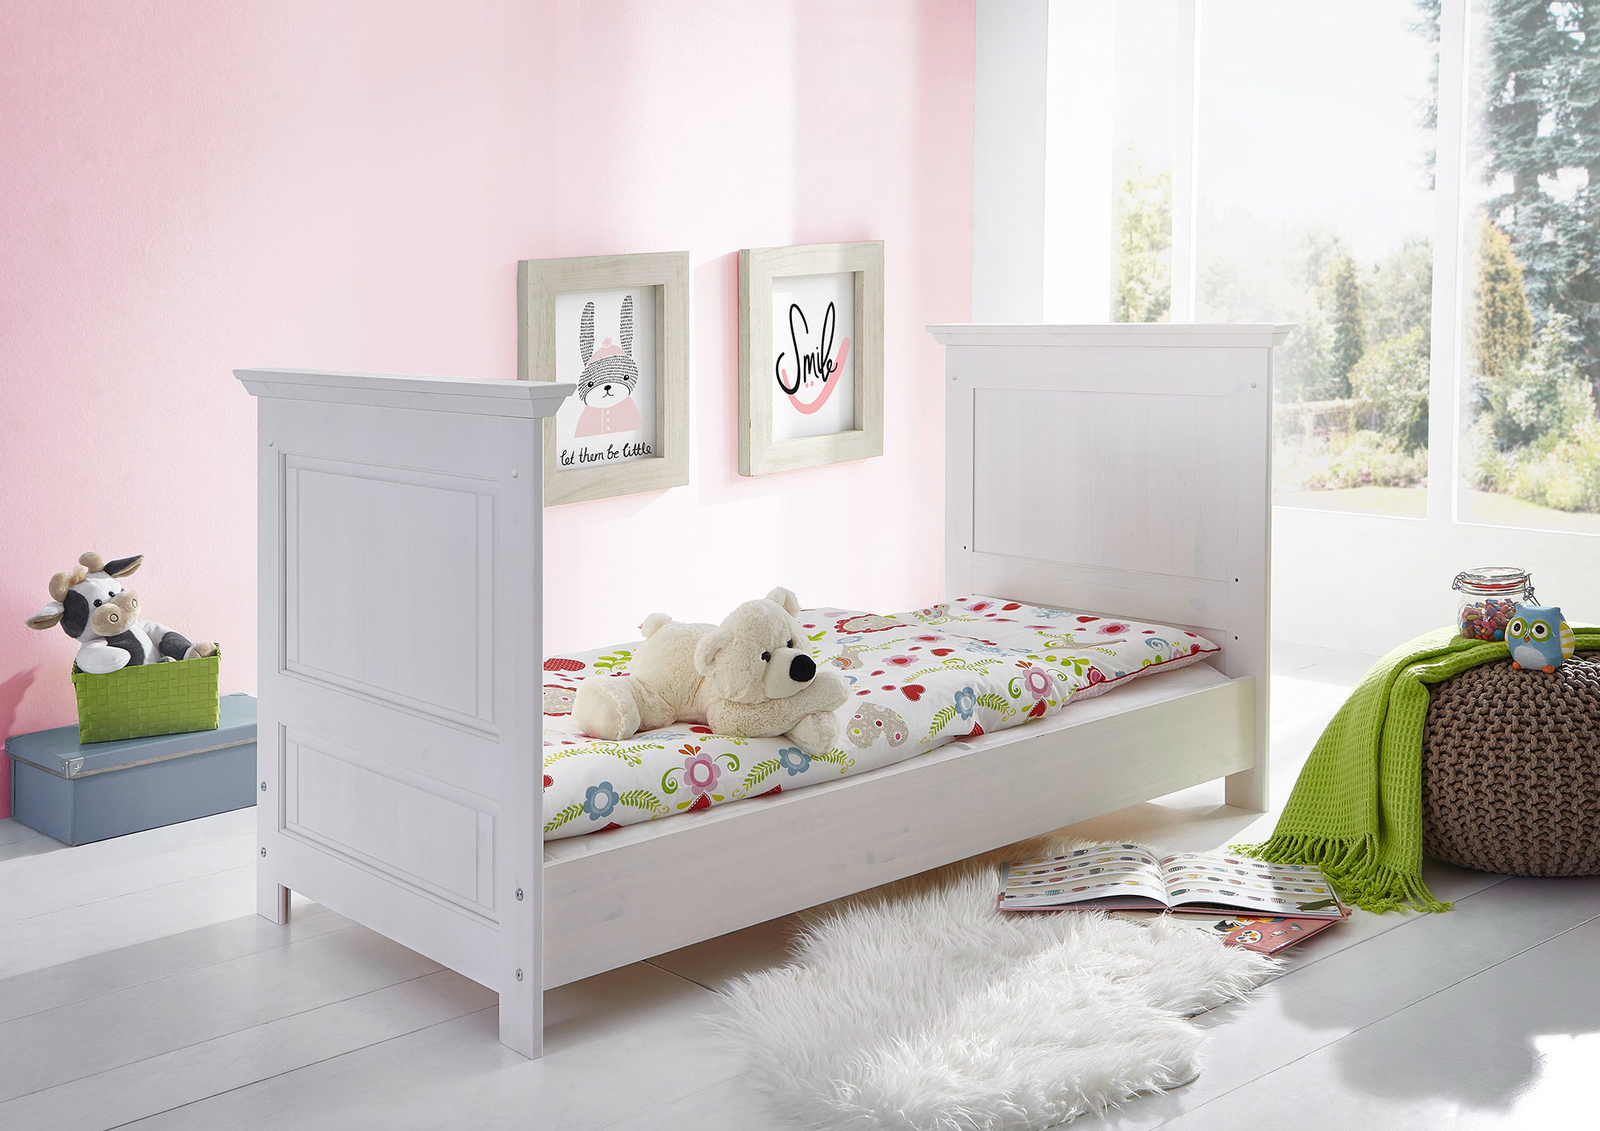 babyzimmer odette kiefer massiv von g k g nstig bestellen skanm bler. Black Bedroom Furniture Sets. Home Design Ideas